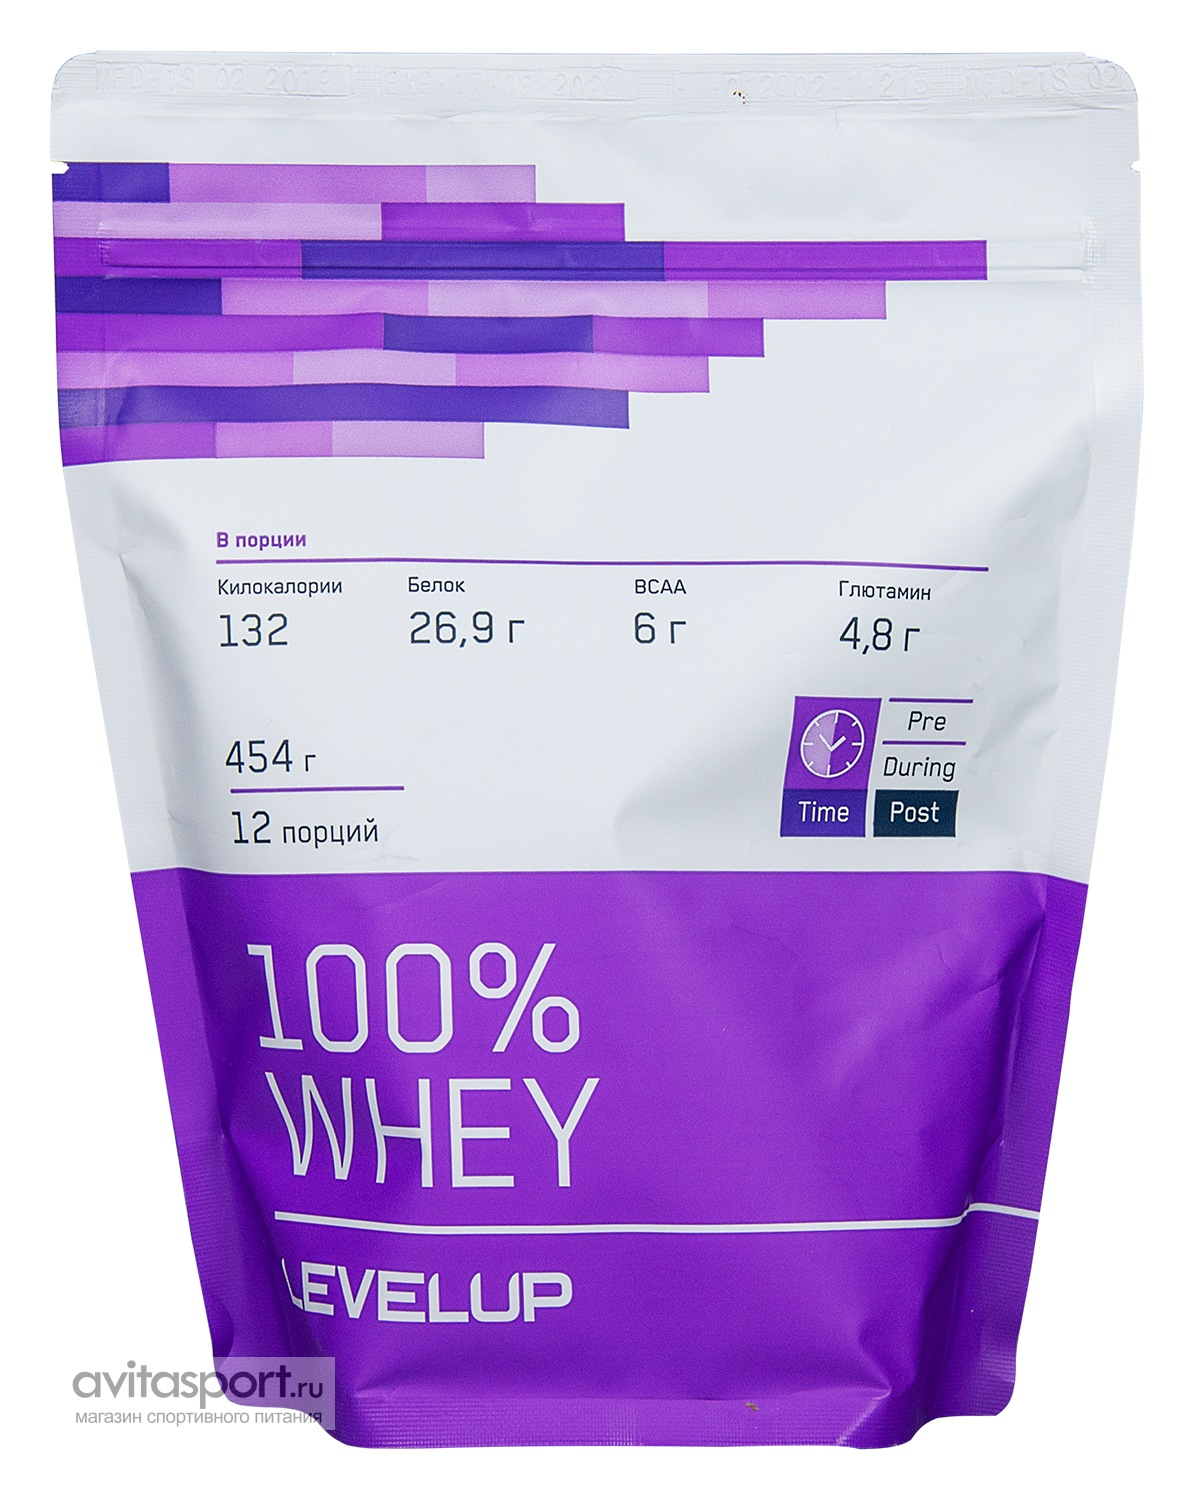 LevelUp 100% Whey 454 г